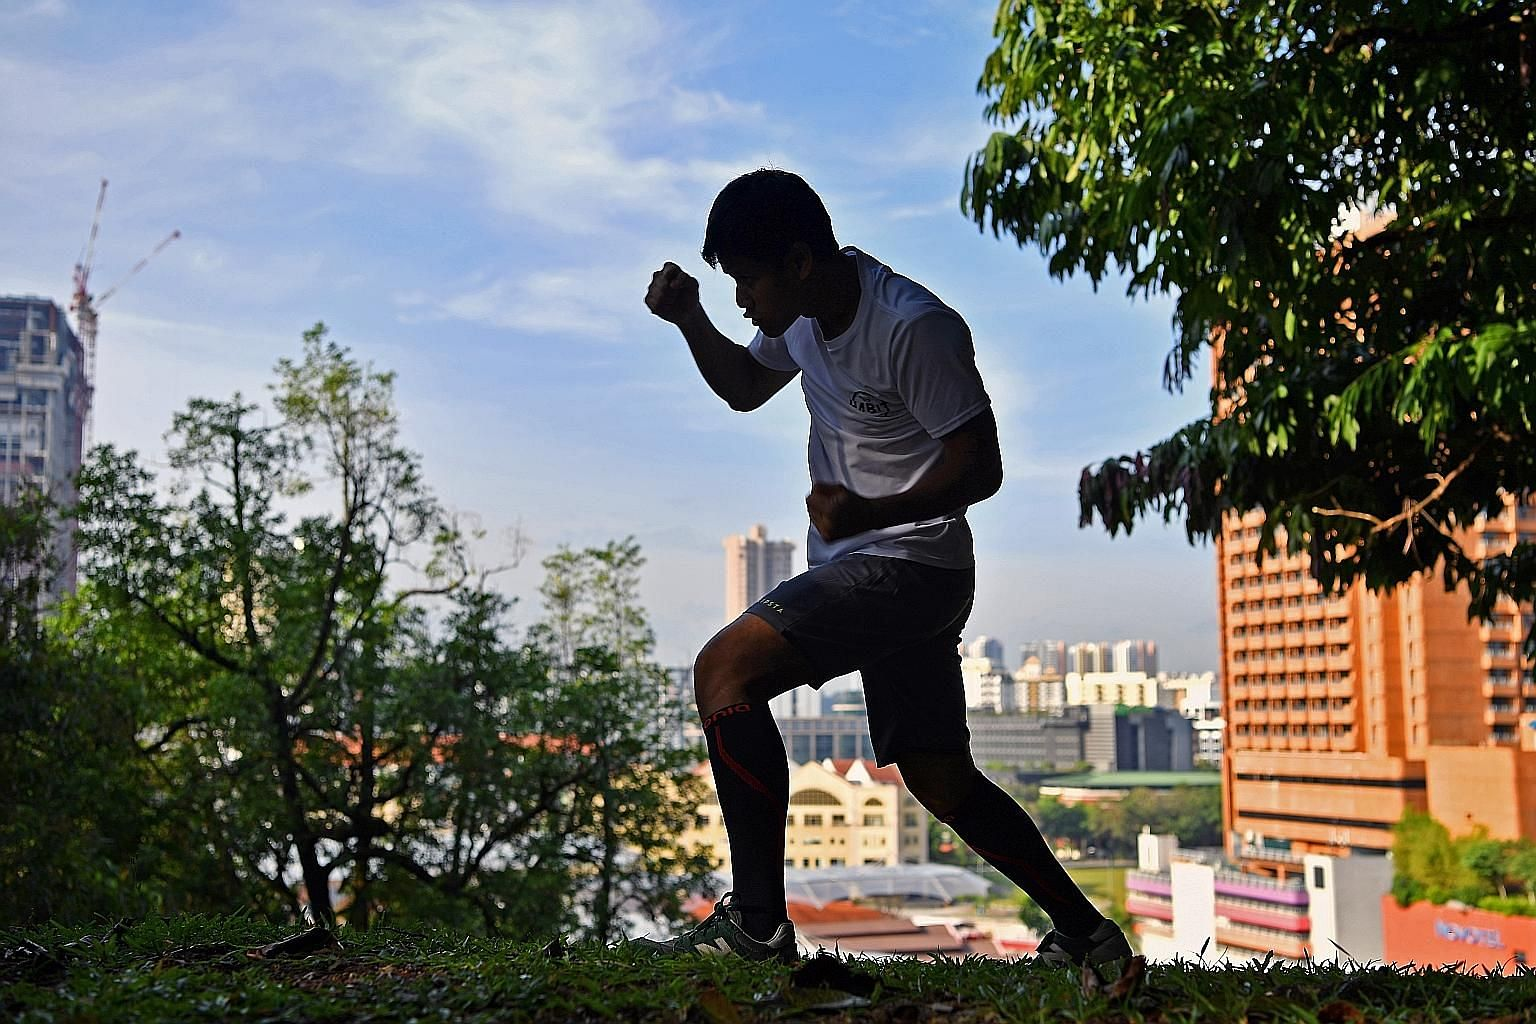 Muhamad Ridhwan shadowboxing after his morning run at Fort Canning Park. The first phase of training before a fight consists of endurance runs, sprints, strength and conditioning exercises, and shadowboxing. The boxer lives by the dictum that one needs to